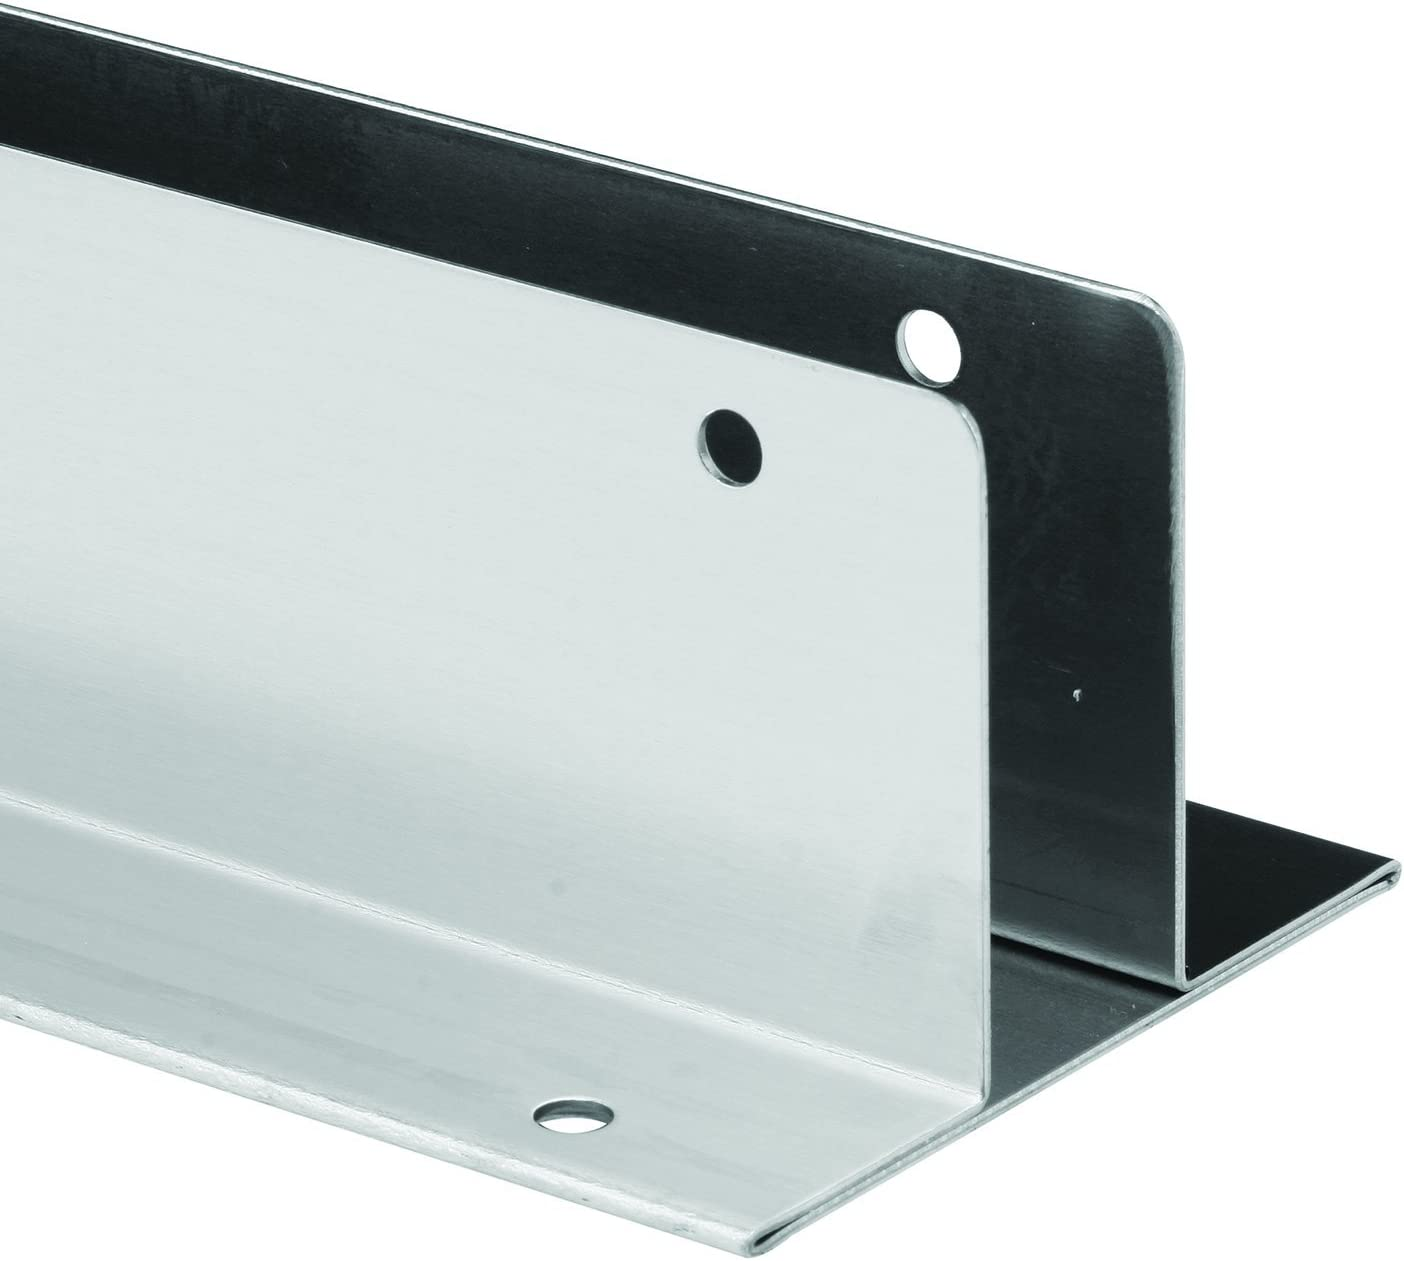 Sentry Supply 650-1520 Continuous Wall Bracket, Two Ear, Fits 1 inch Panels, Stainless Steel, 41 inch Long